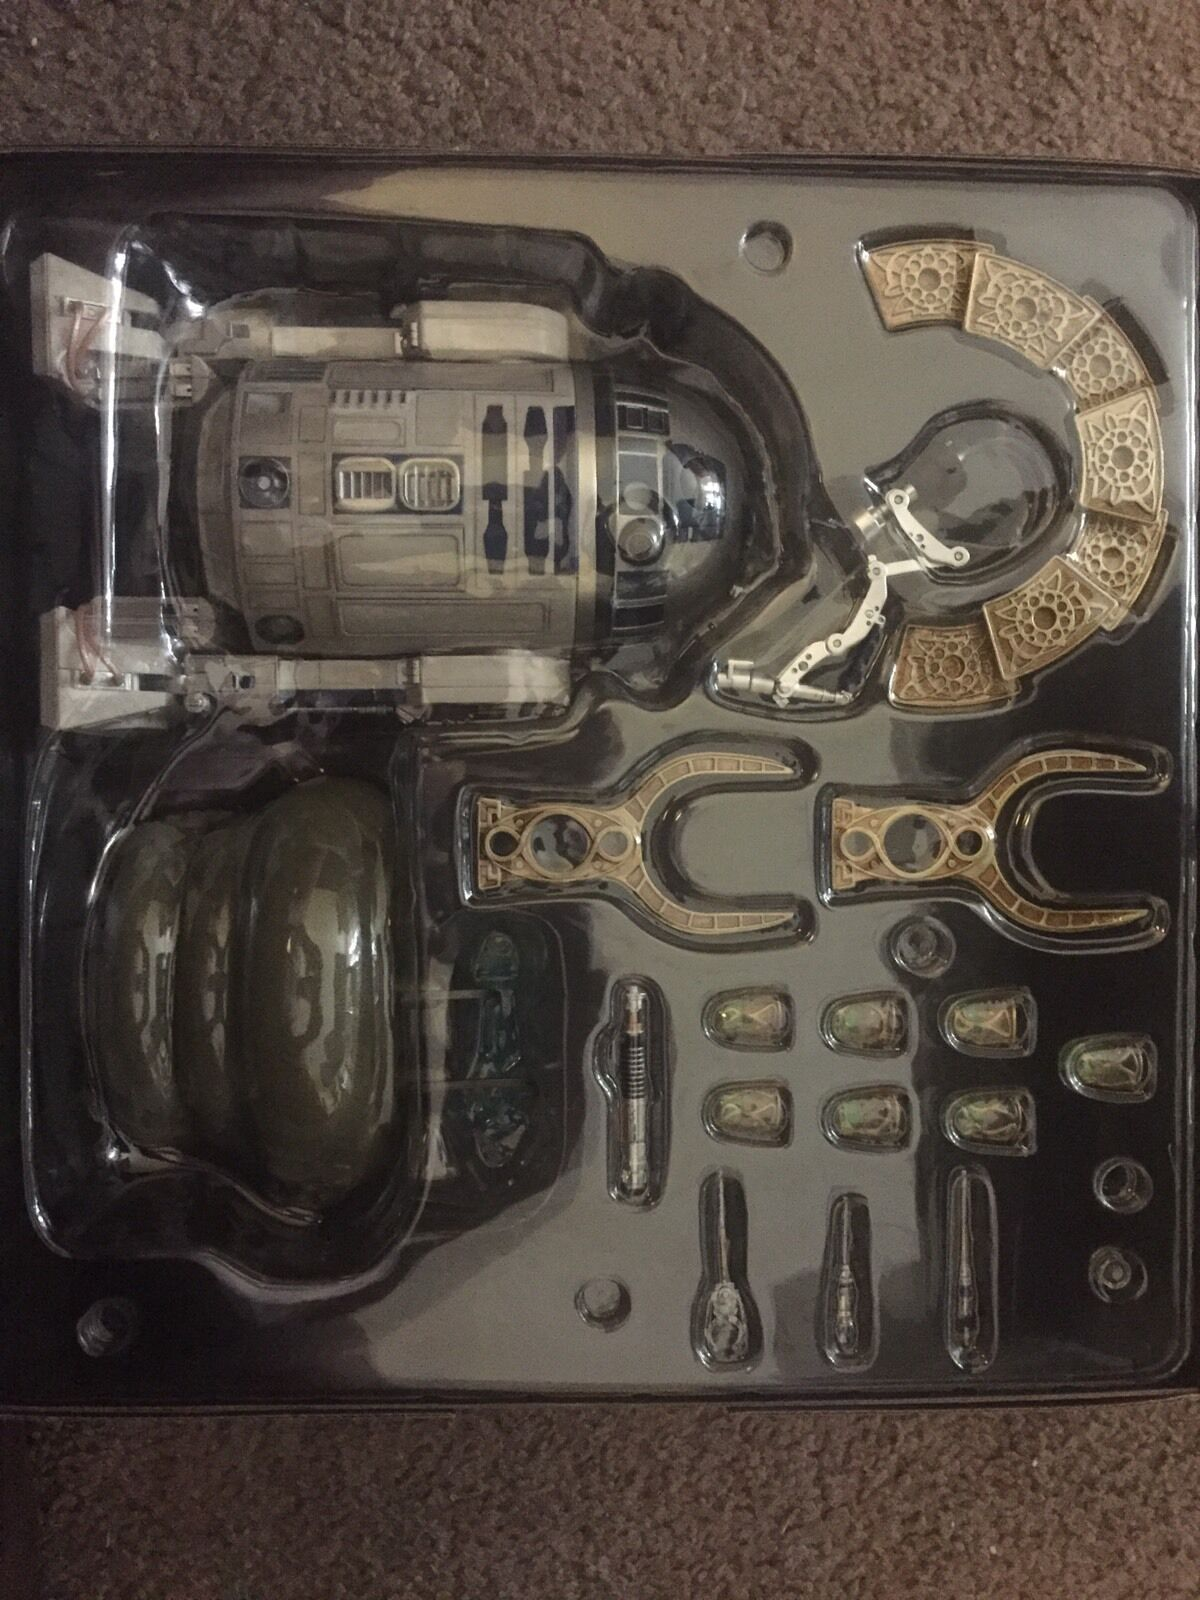 Sixth Scale R2-D2 with many functions.